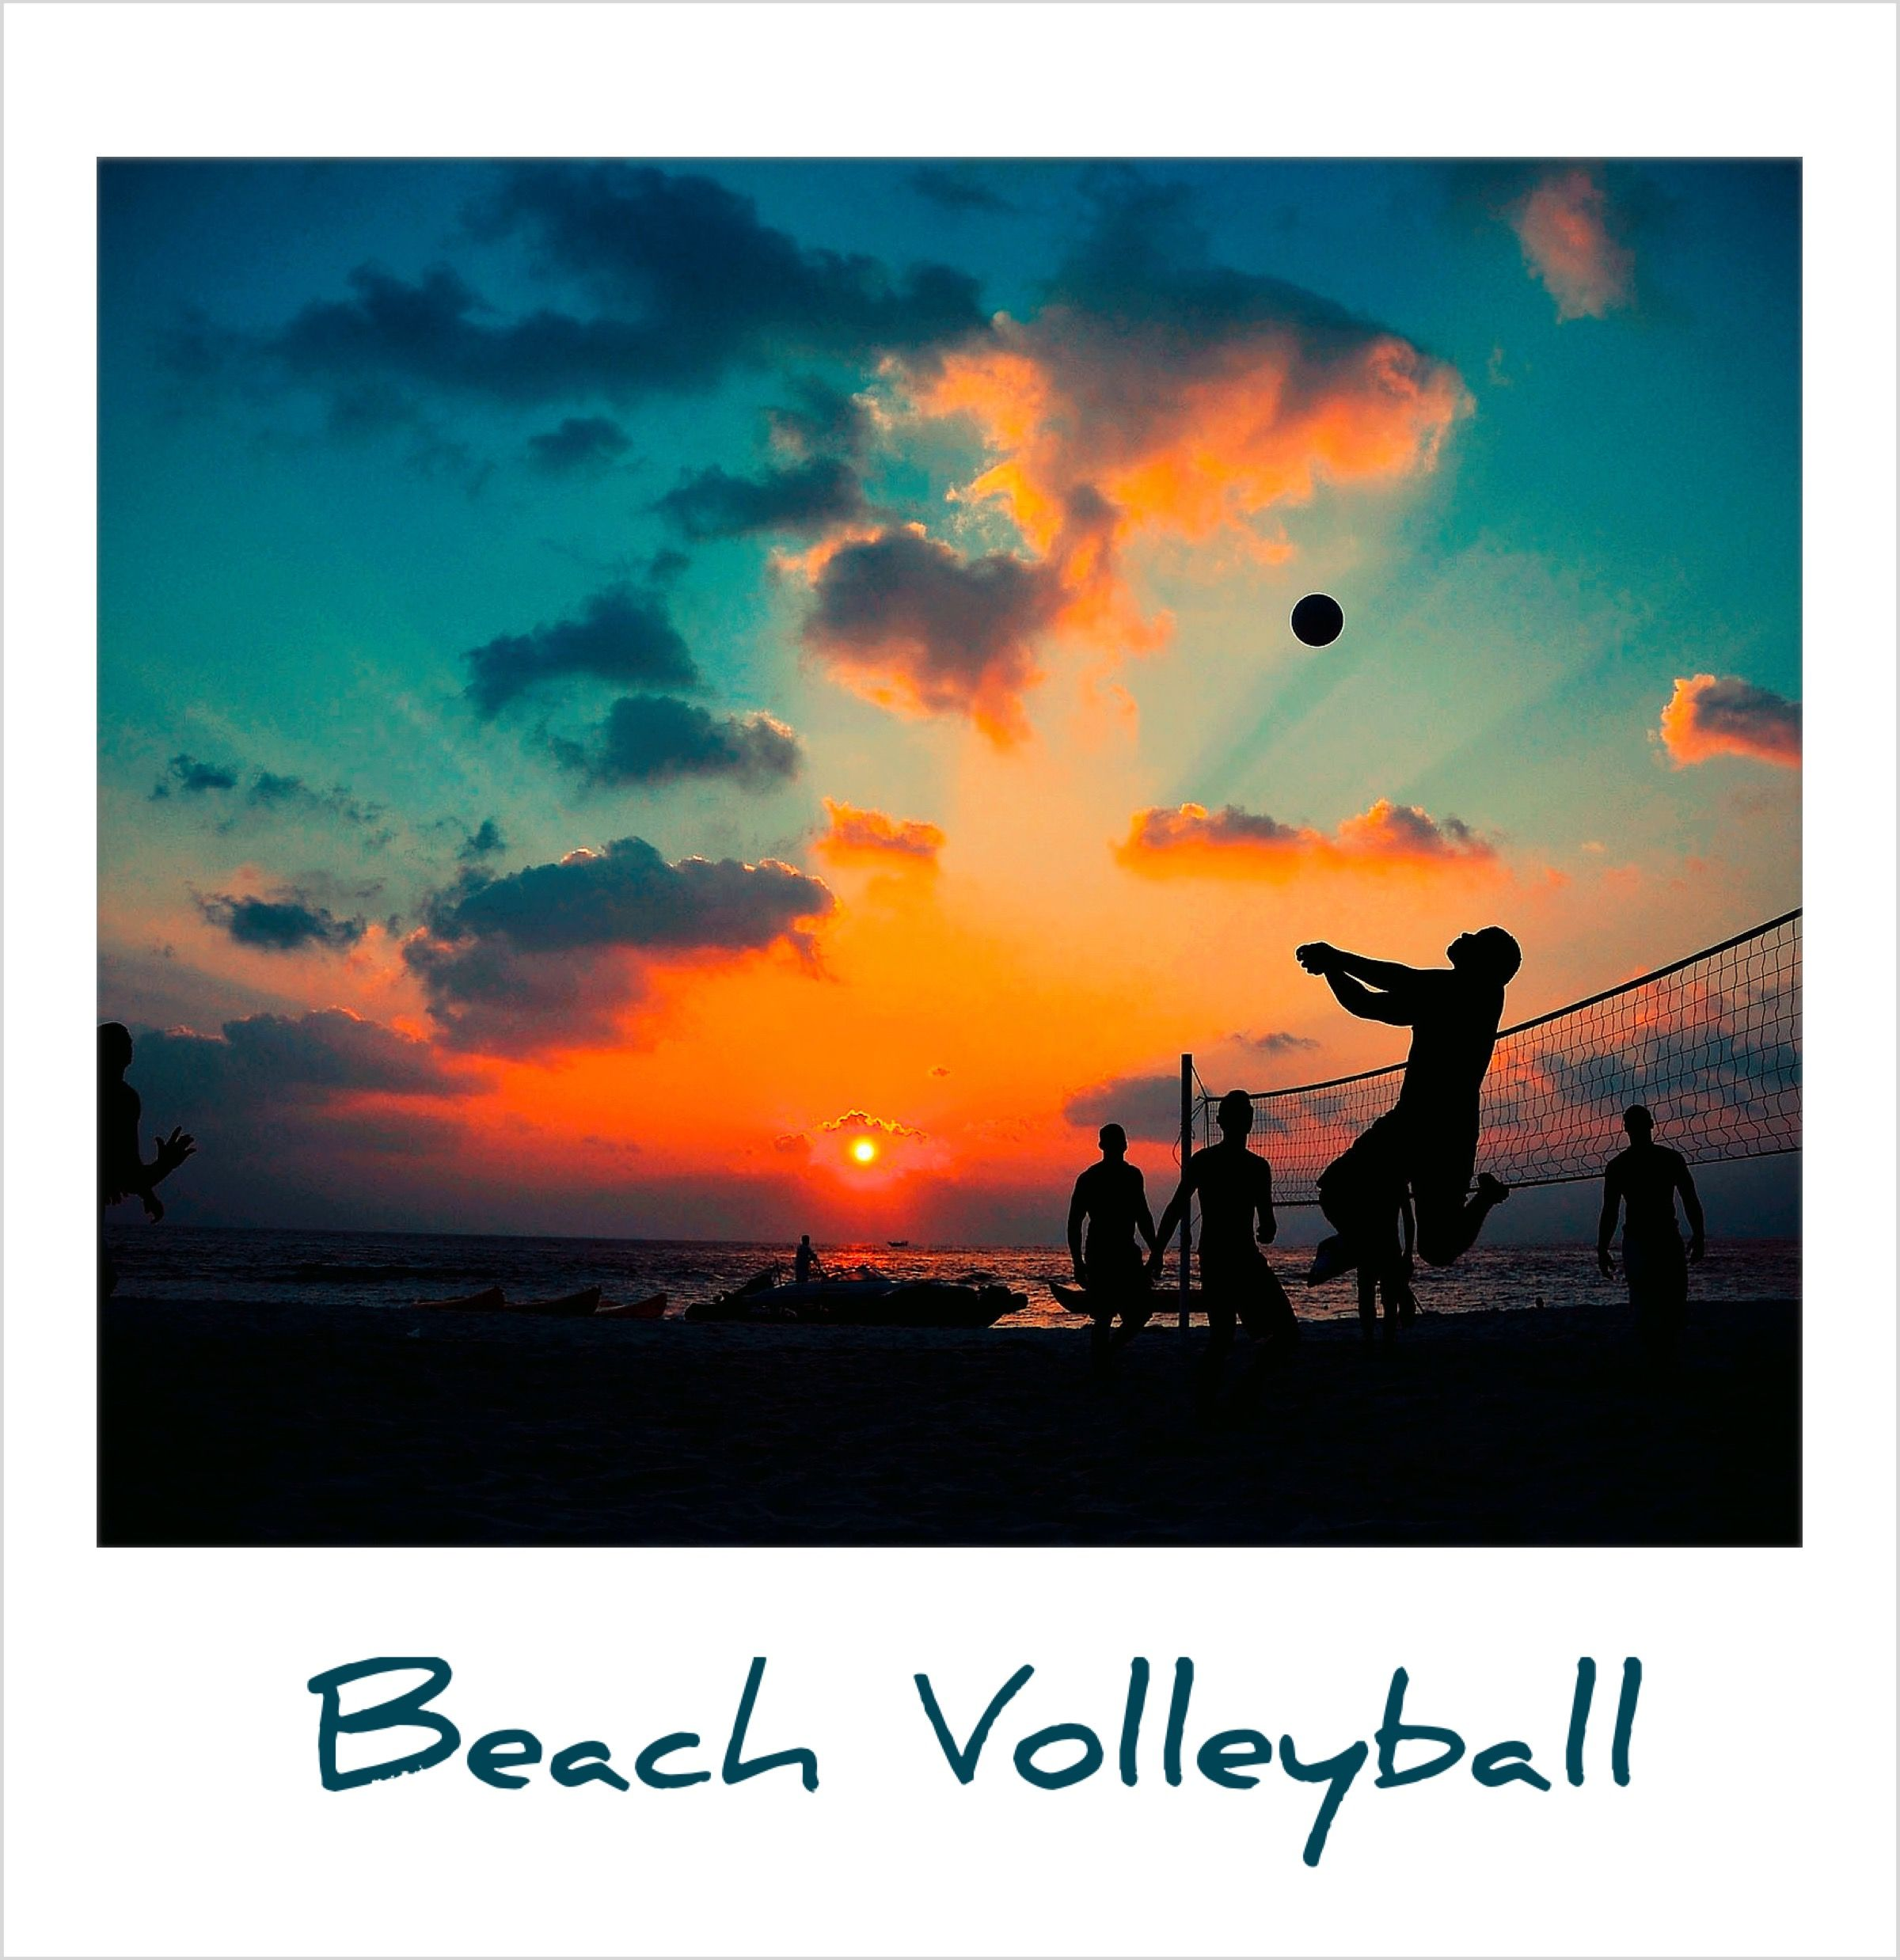 Beach Volleyball Polaroidfx Polaroid Sports Summertime Play Volleyball Wallpaper Beach Volleyball Volleyball Backgrounds